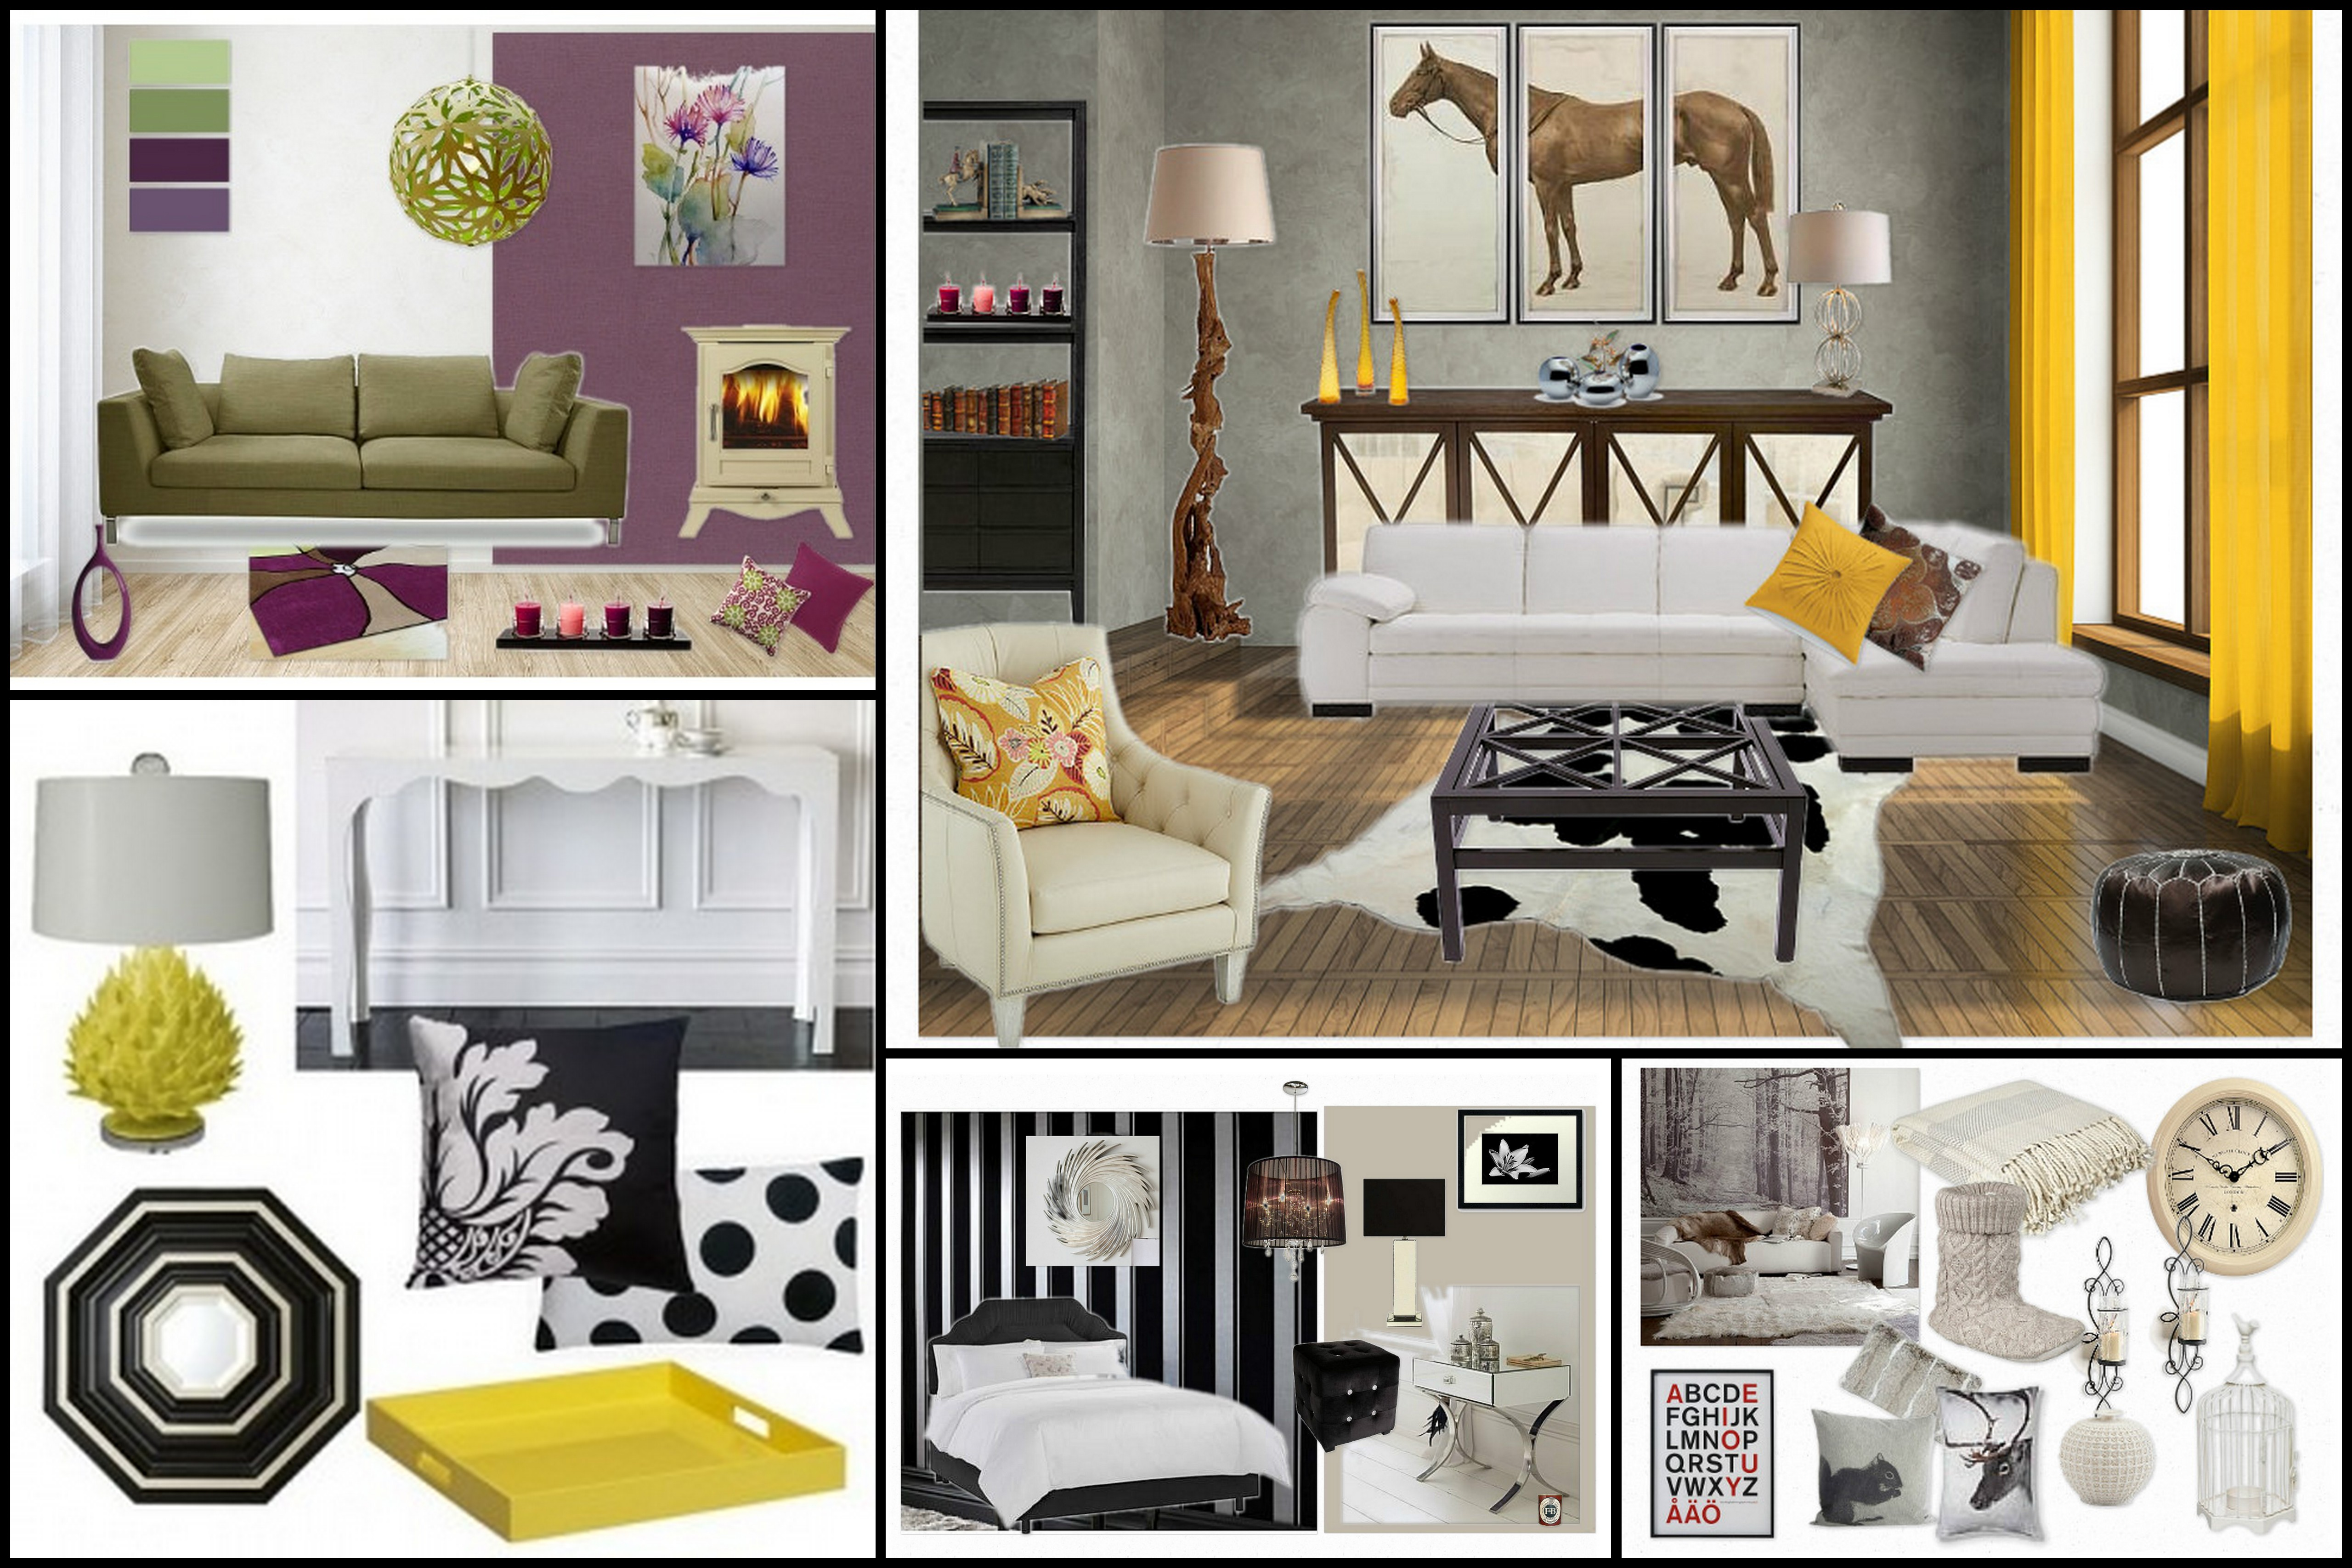 the gallery for interior design mood board